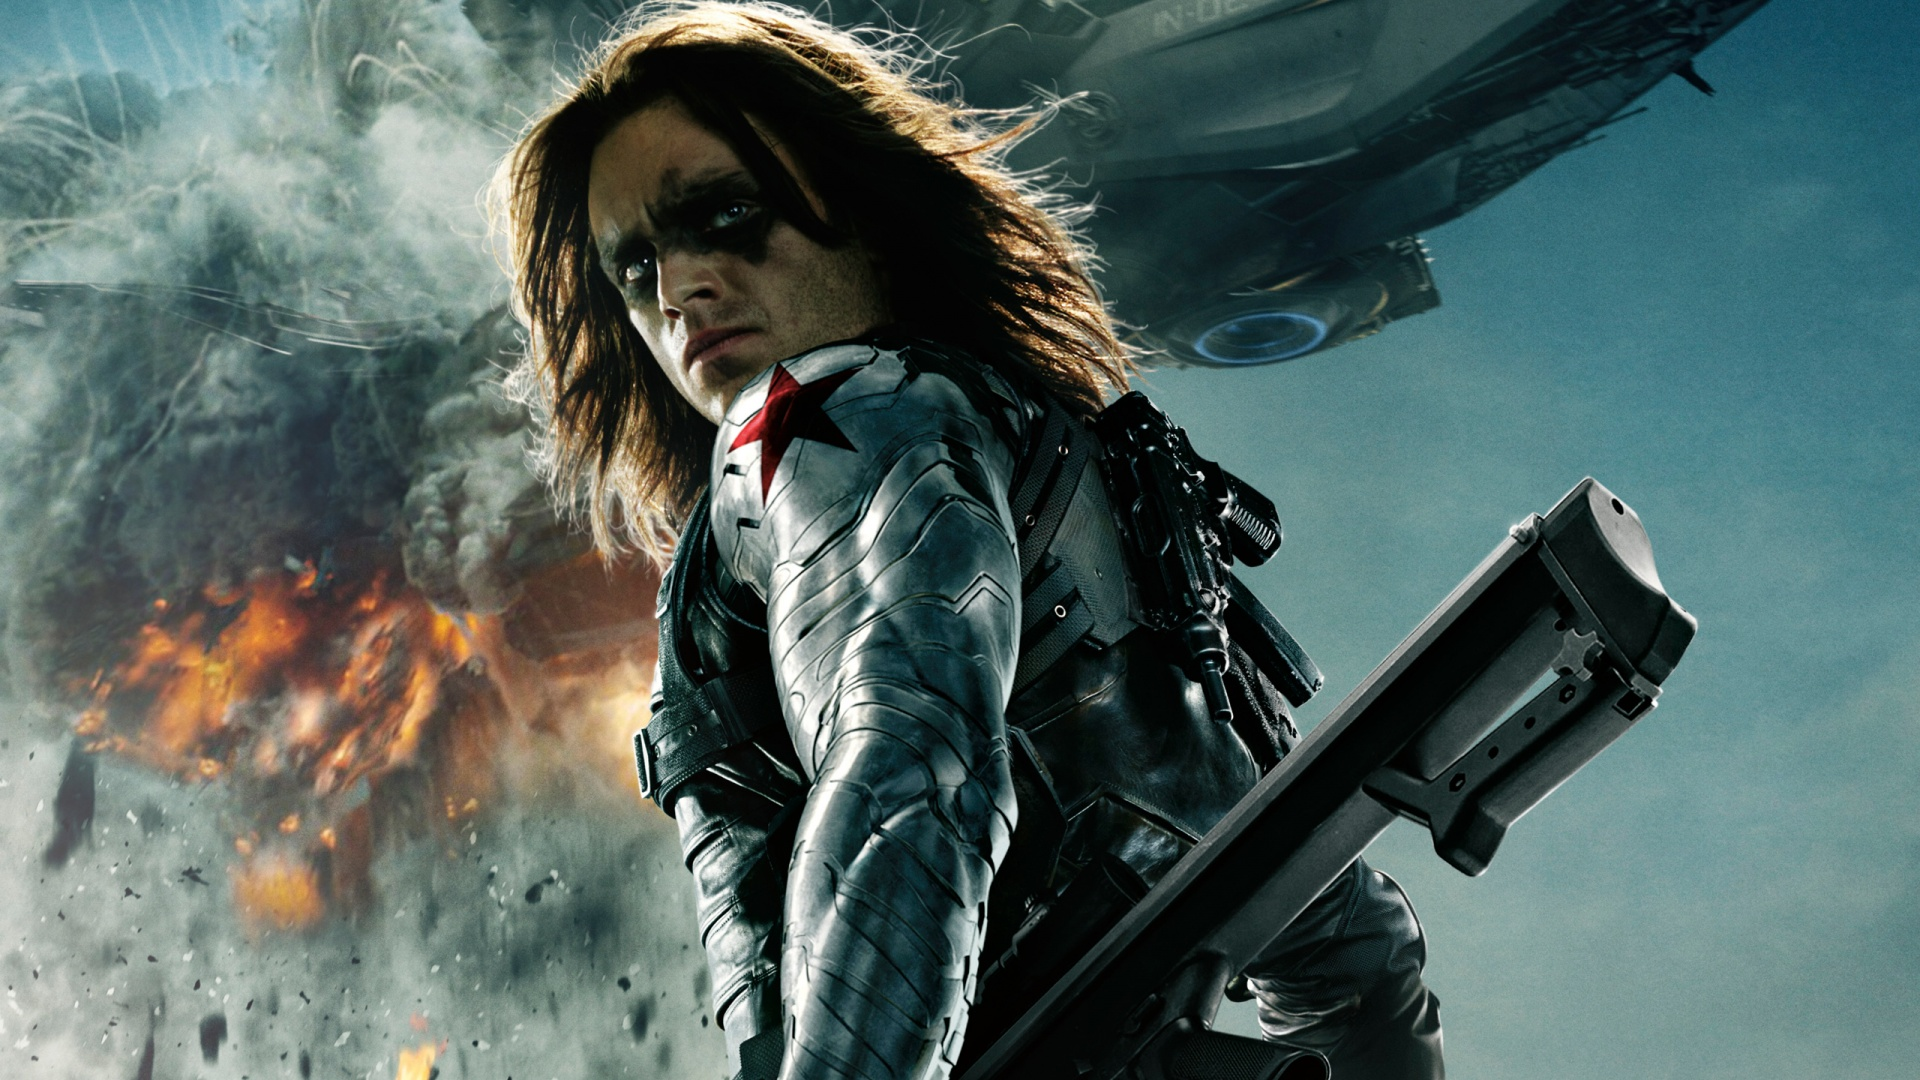 Black Widow Captain America The Winter Soldier wallpapers ...